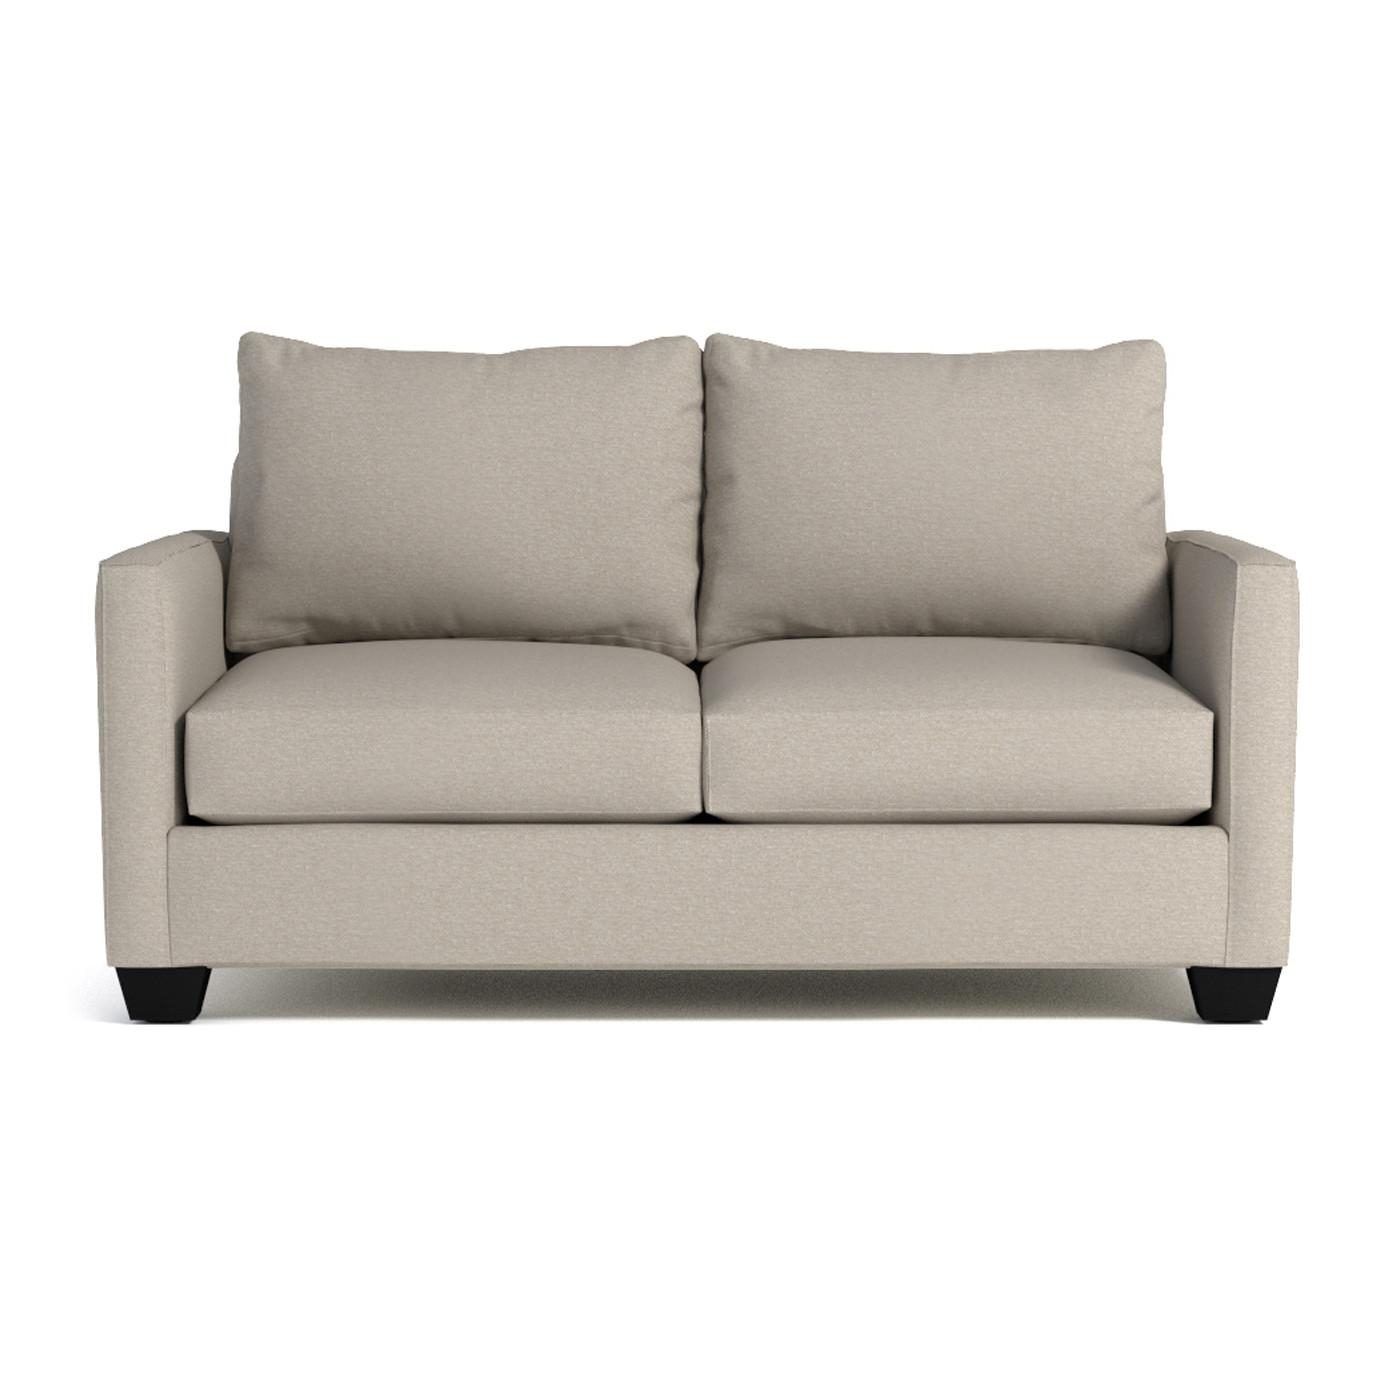 Awesome Apartment Size Sofa: Best Furniture For Small Living Room Throughout Awesome Sofa (View 15 of 20)